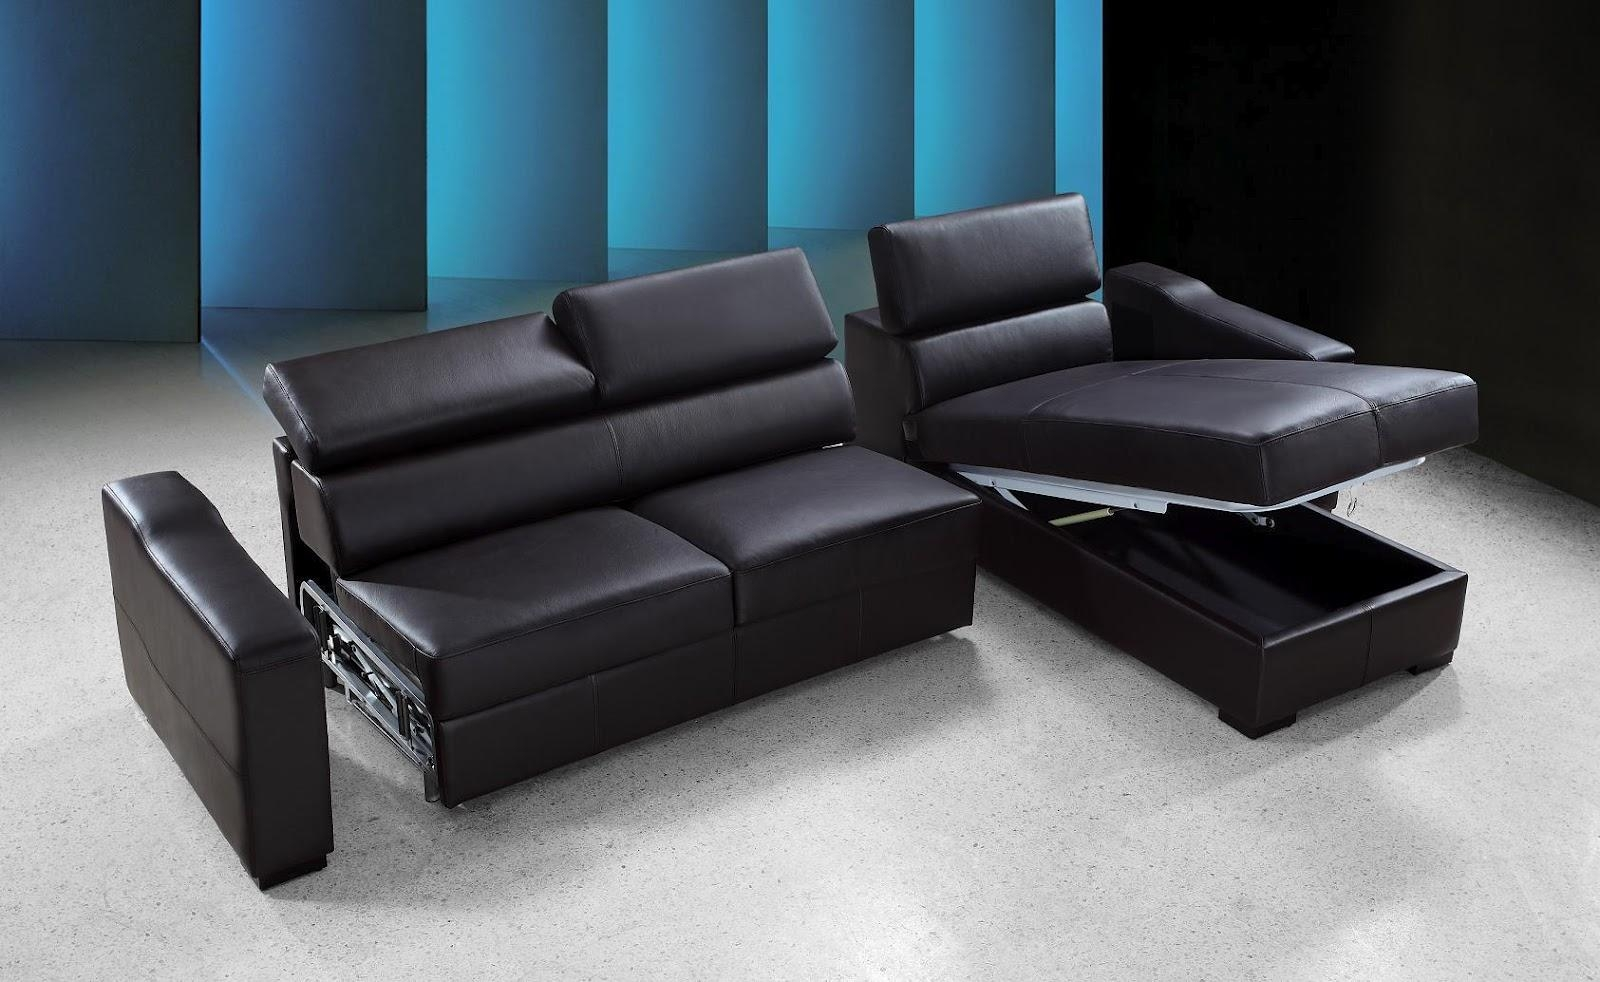 Furniture Home : Sofa Bed Sleeper Interior Simple Design Sofa Bed Inside Sofa Bed Chairs (View 20 of 20)